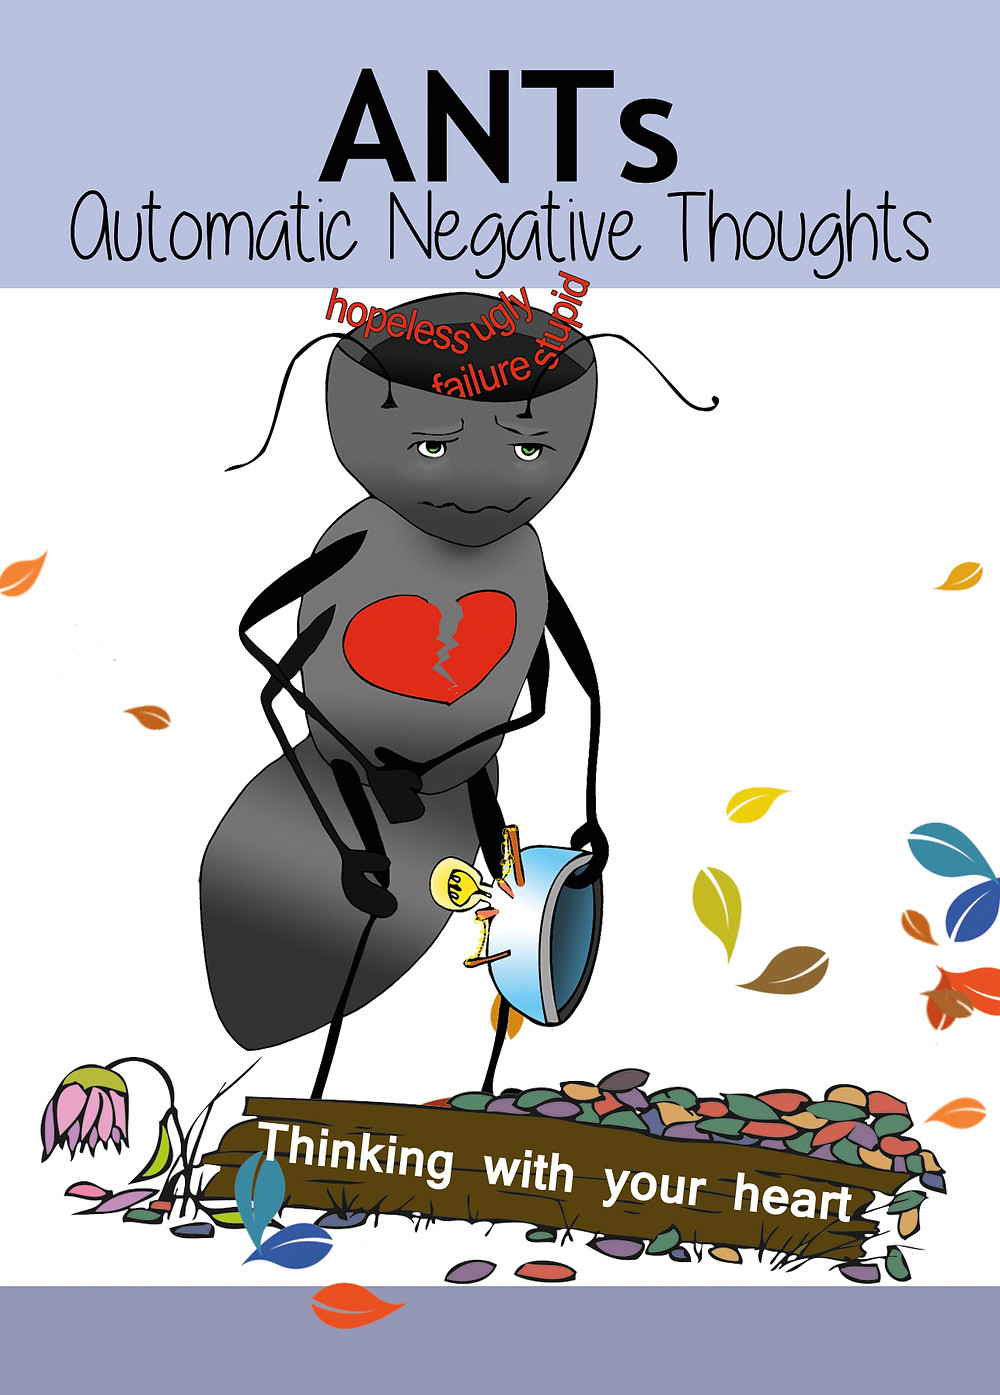 Ant depicting 'Thinking with your heart': reframing emotional reasoning